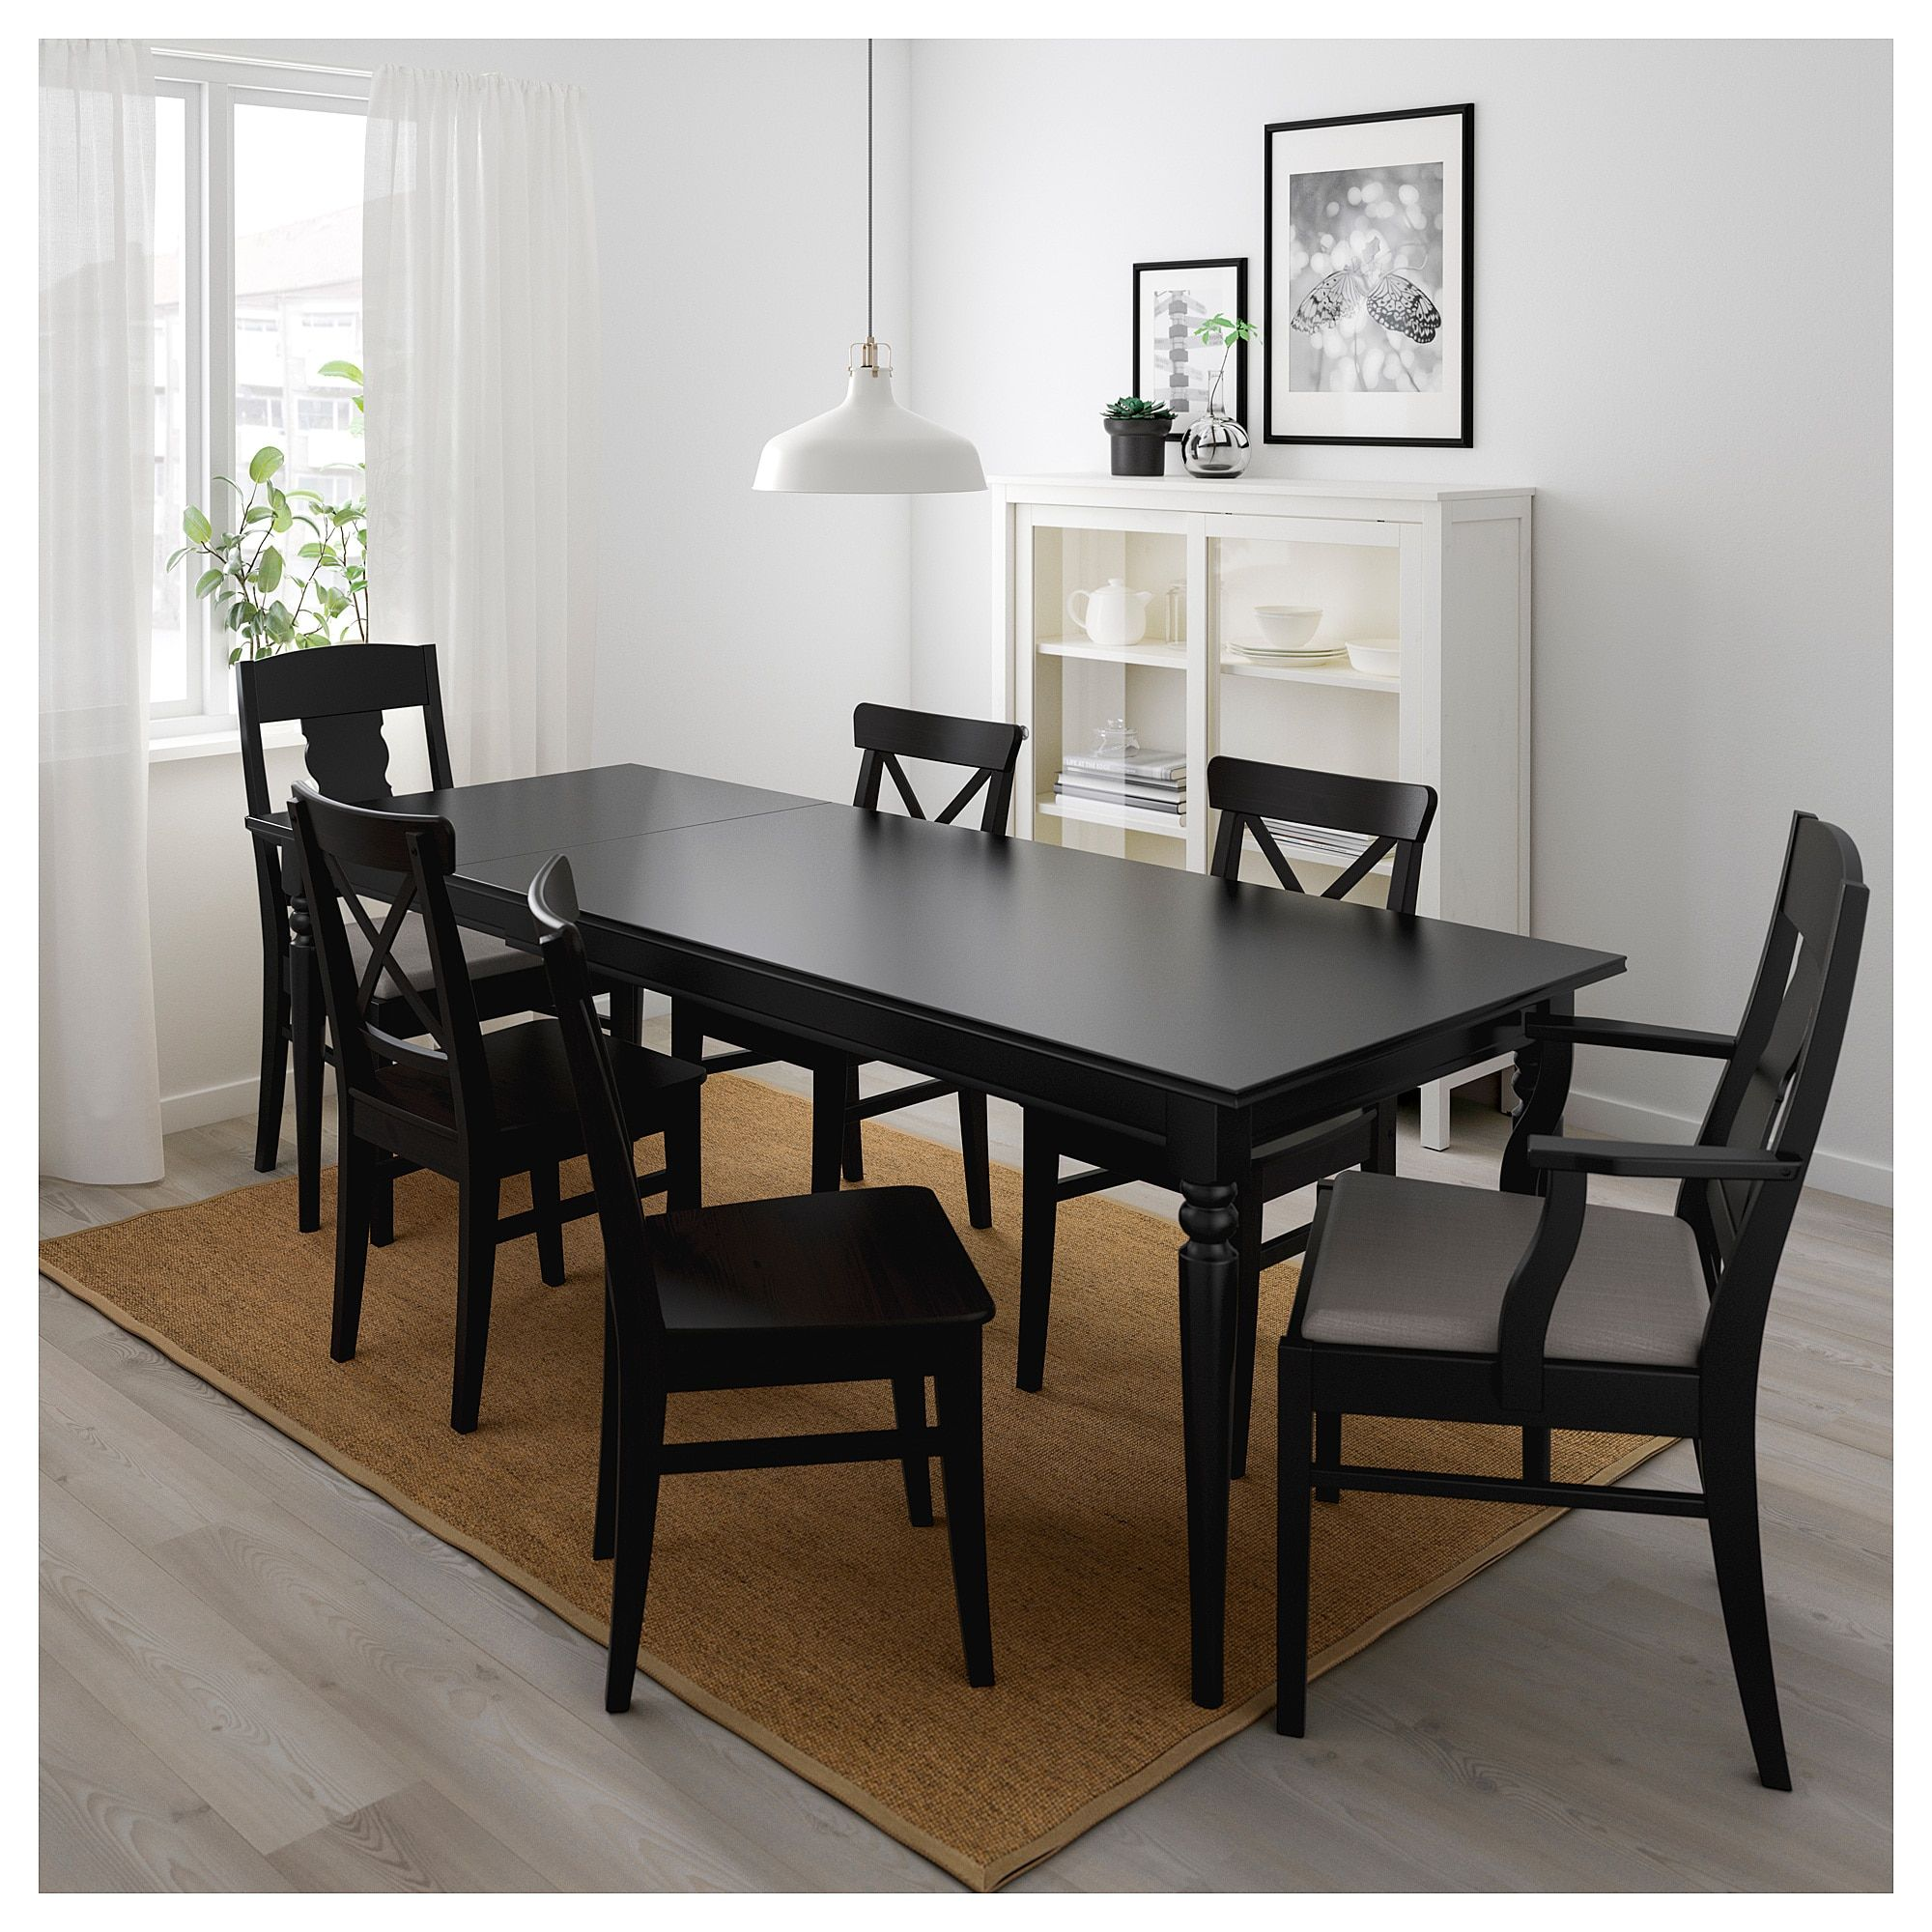 Ikea Ingatorp Ingolf Table And 6 Chairs In 2020 Table